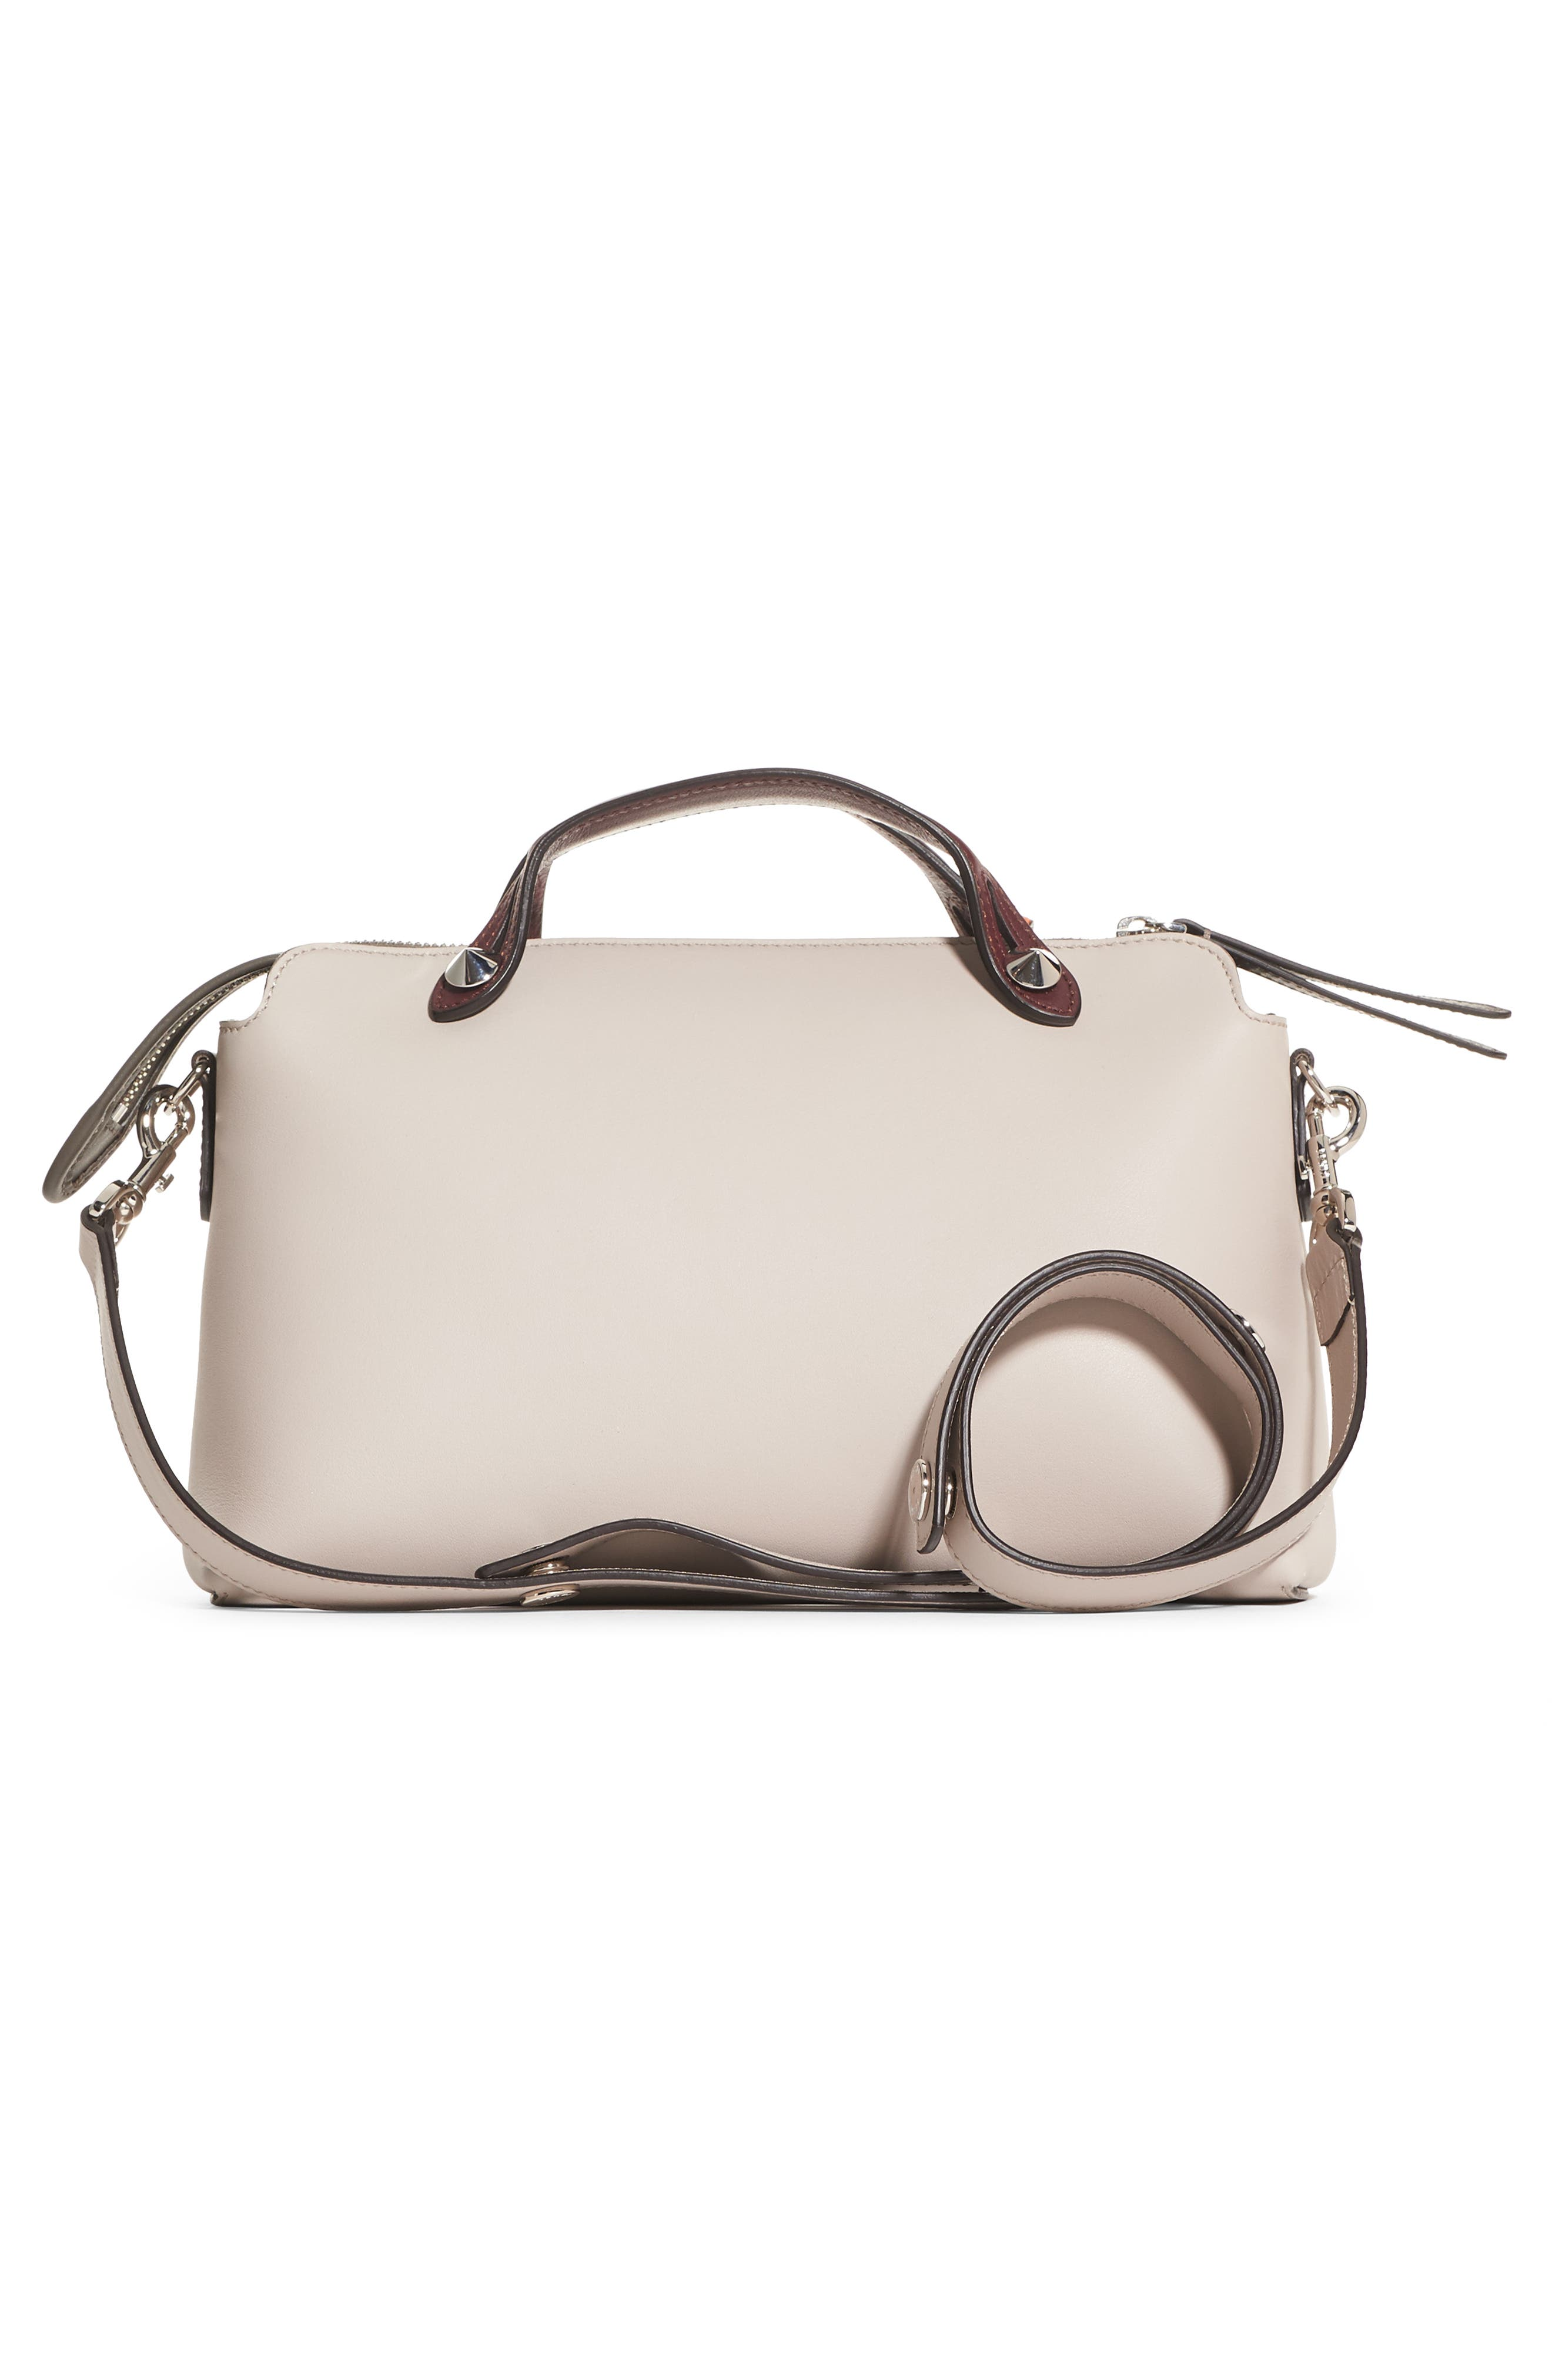 Alternate Image 2  - Fendi 'Medium By the Way' Colorblock Leather Shoulder Bag